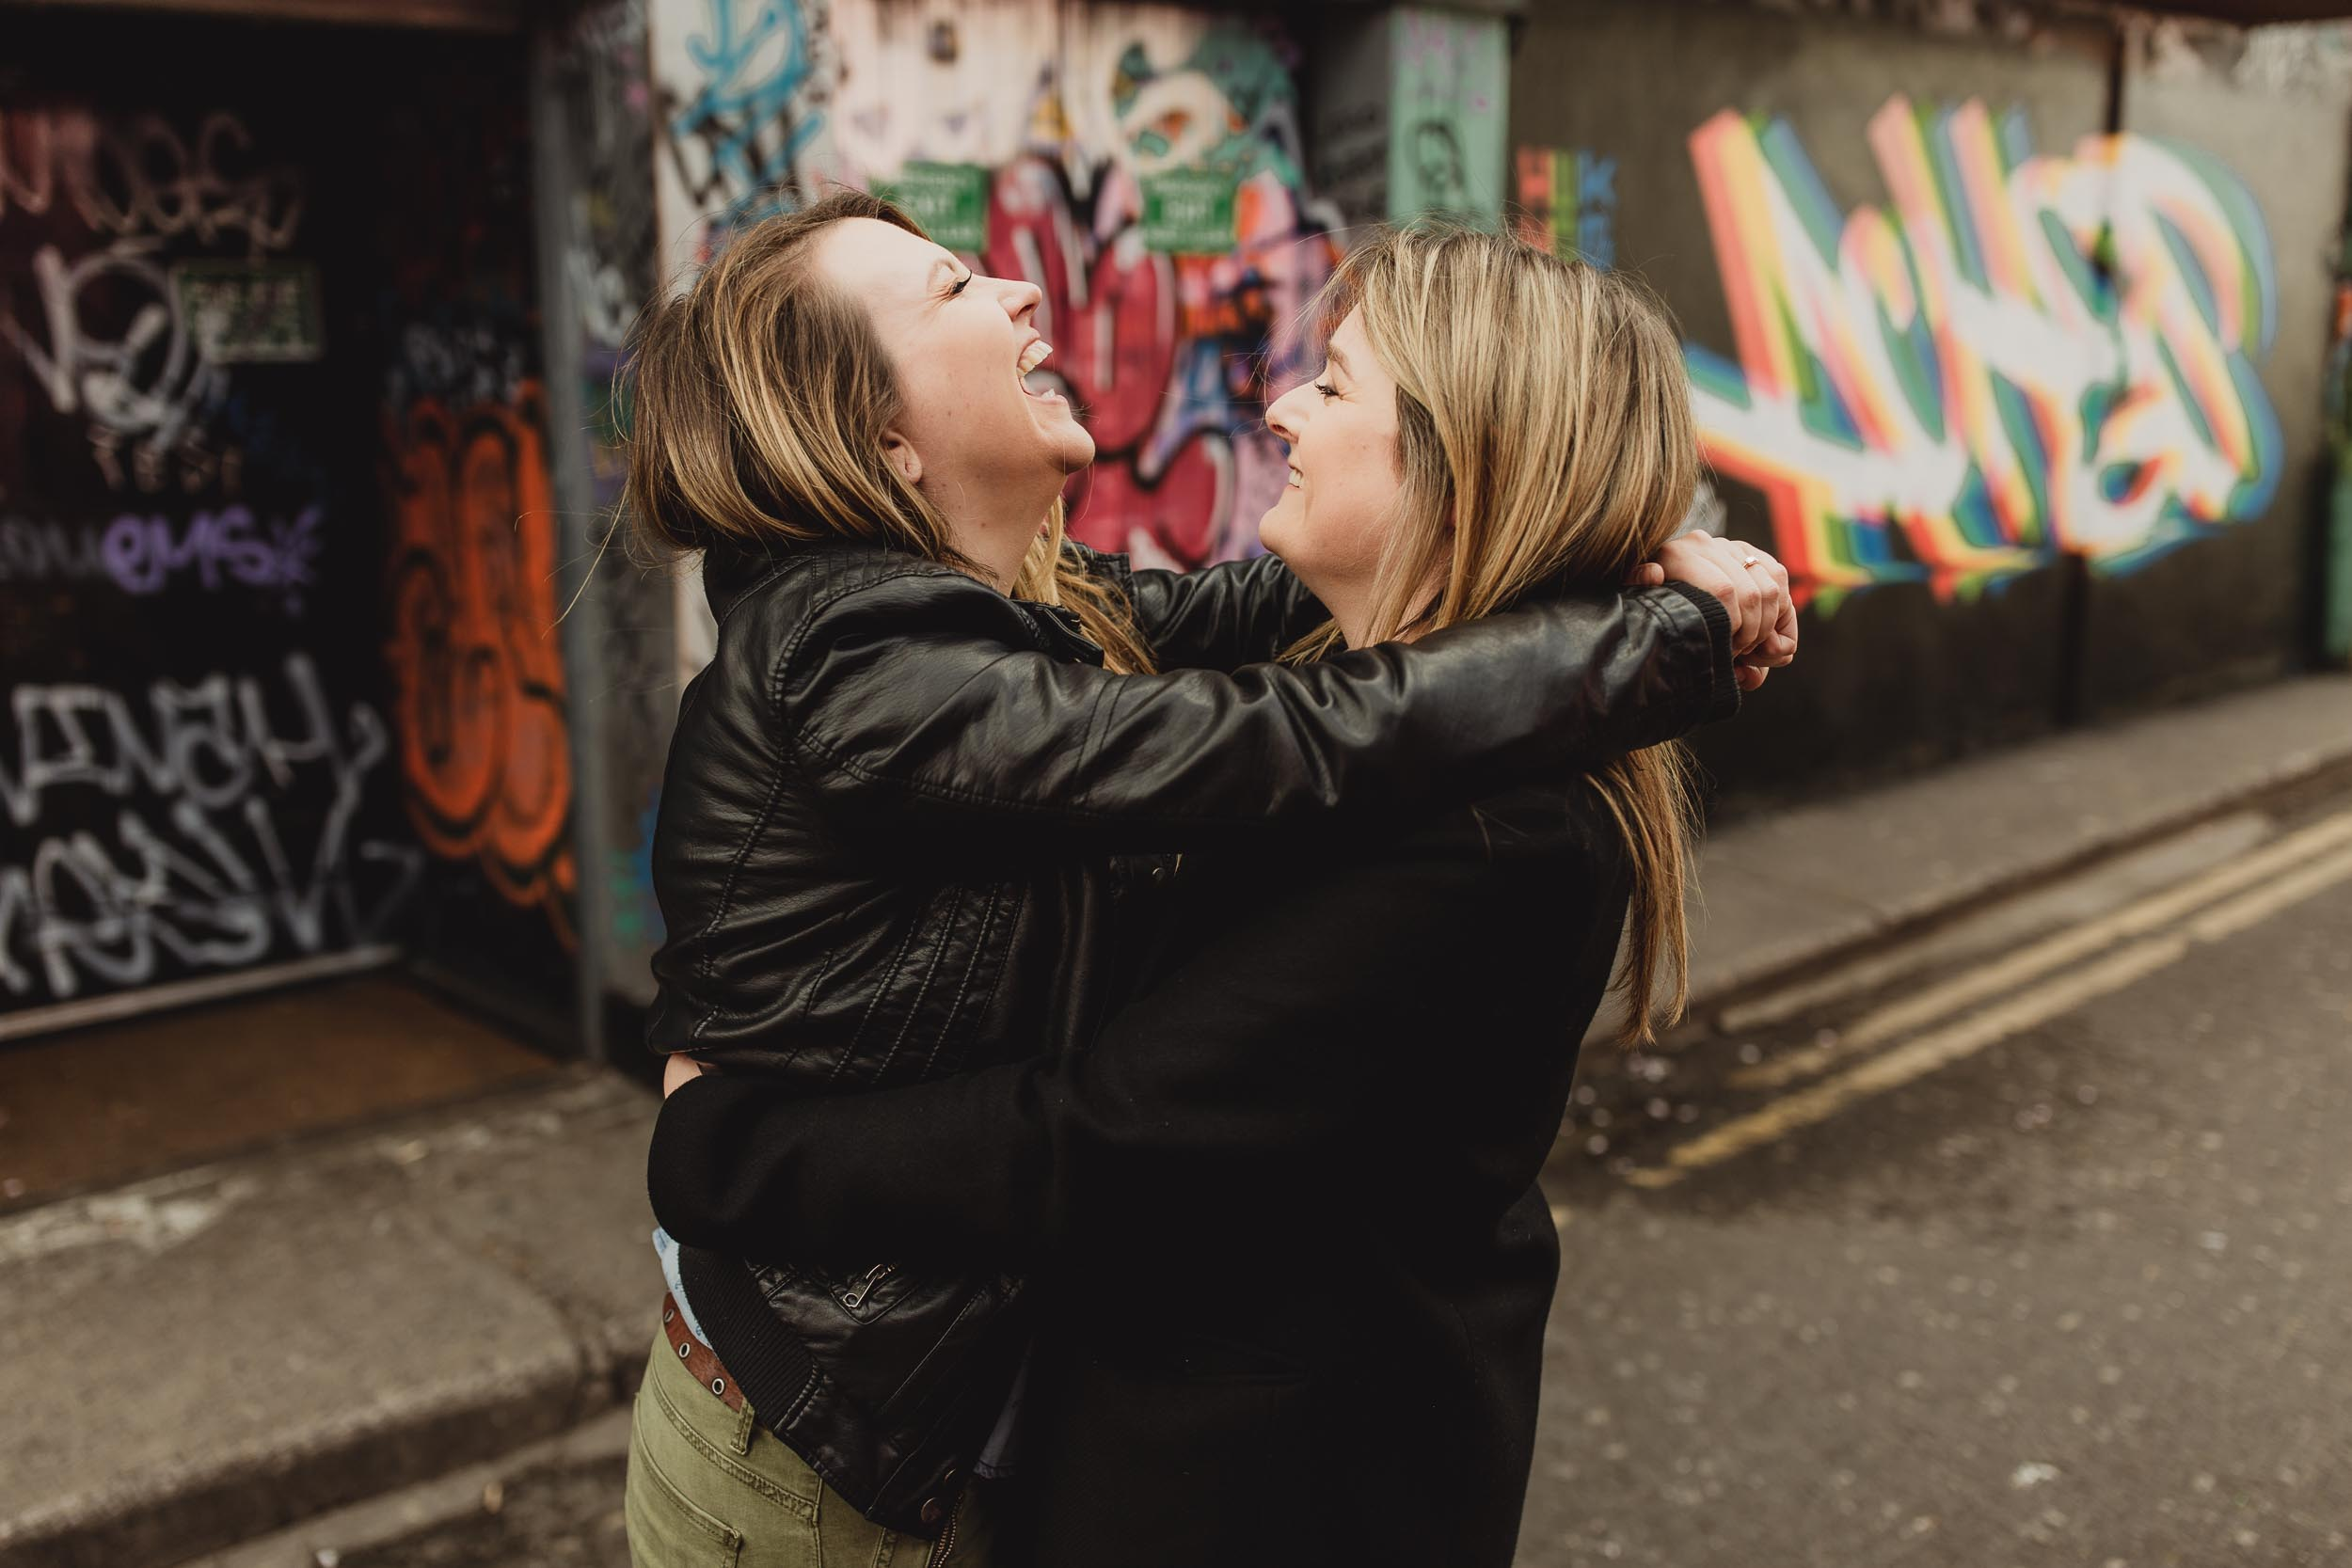 40 Lesbian Dating | Dating for 40+ single lesbians in Ireland